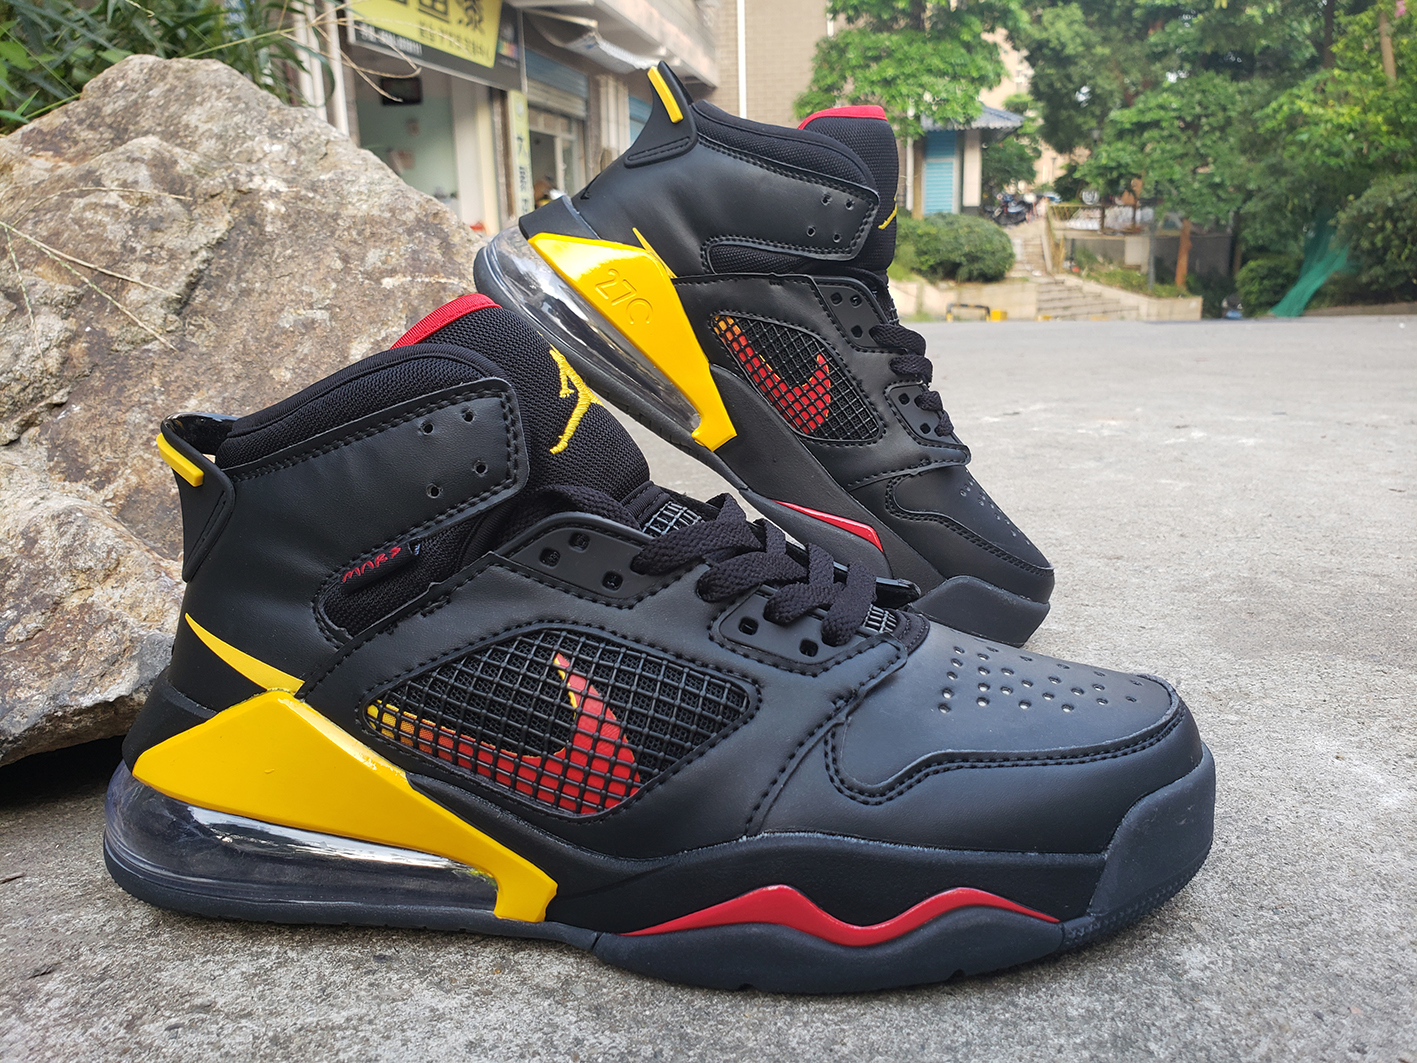 2019 Jordan Max 270 Black Red Yellow Shoes